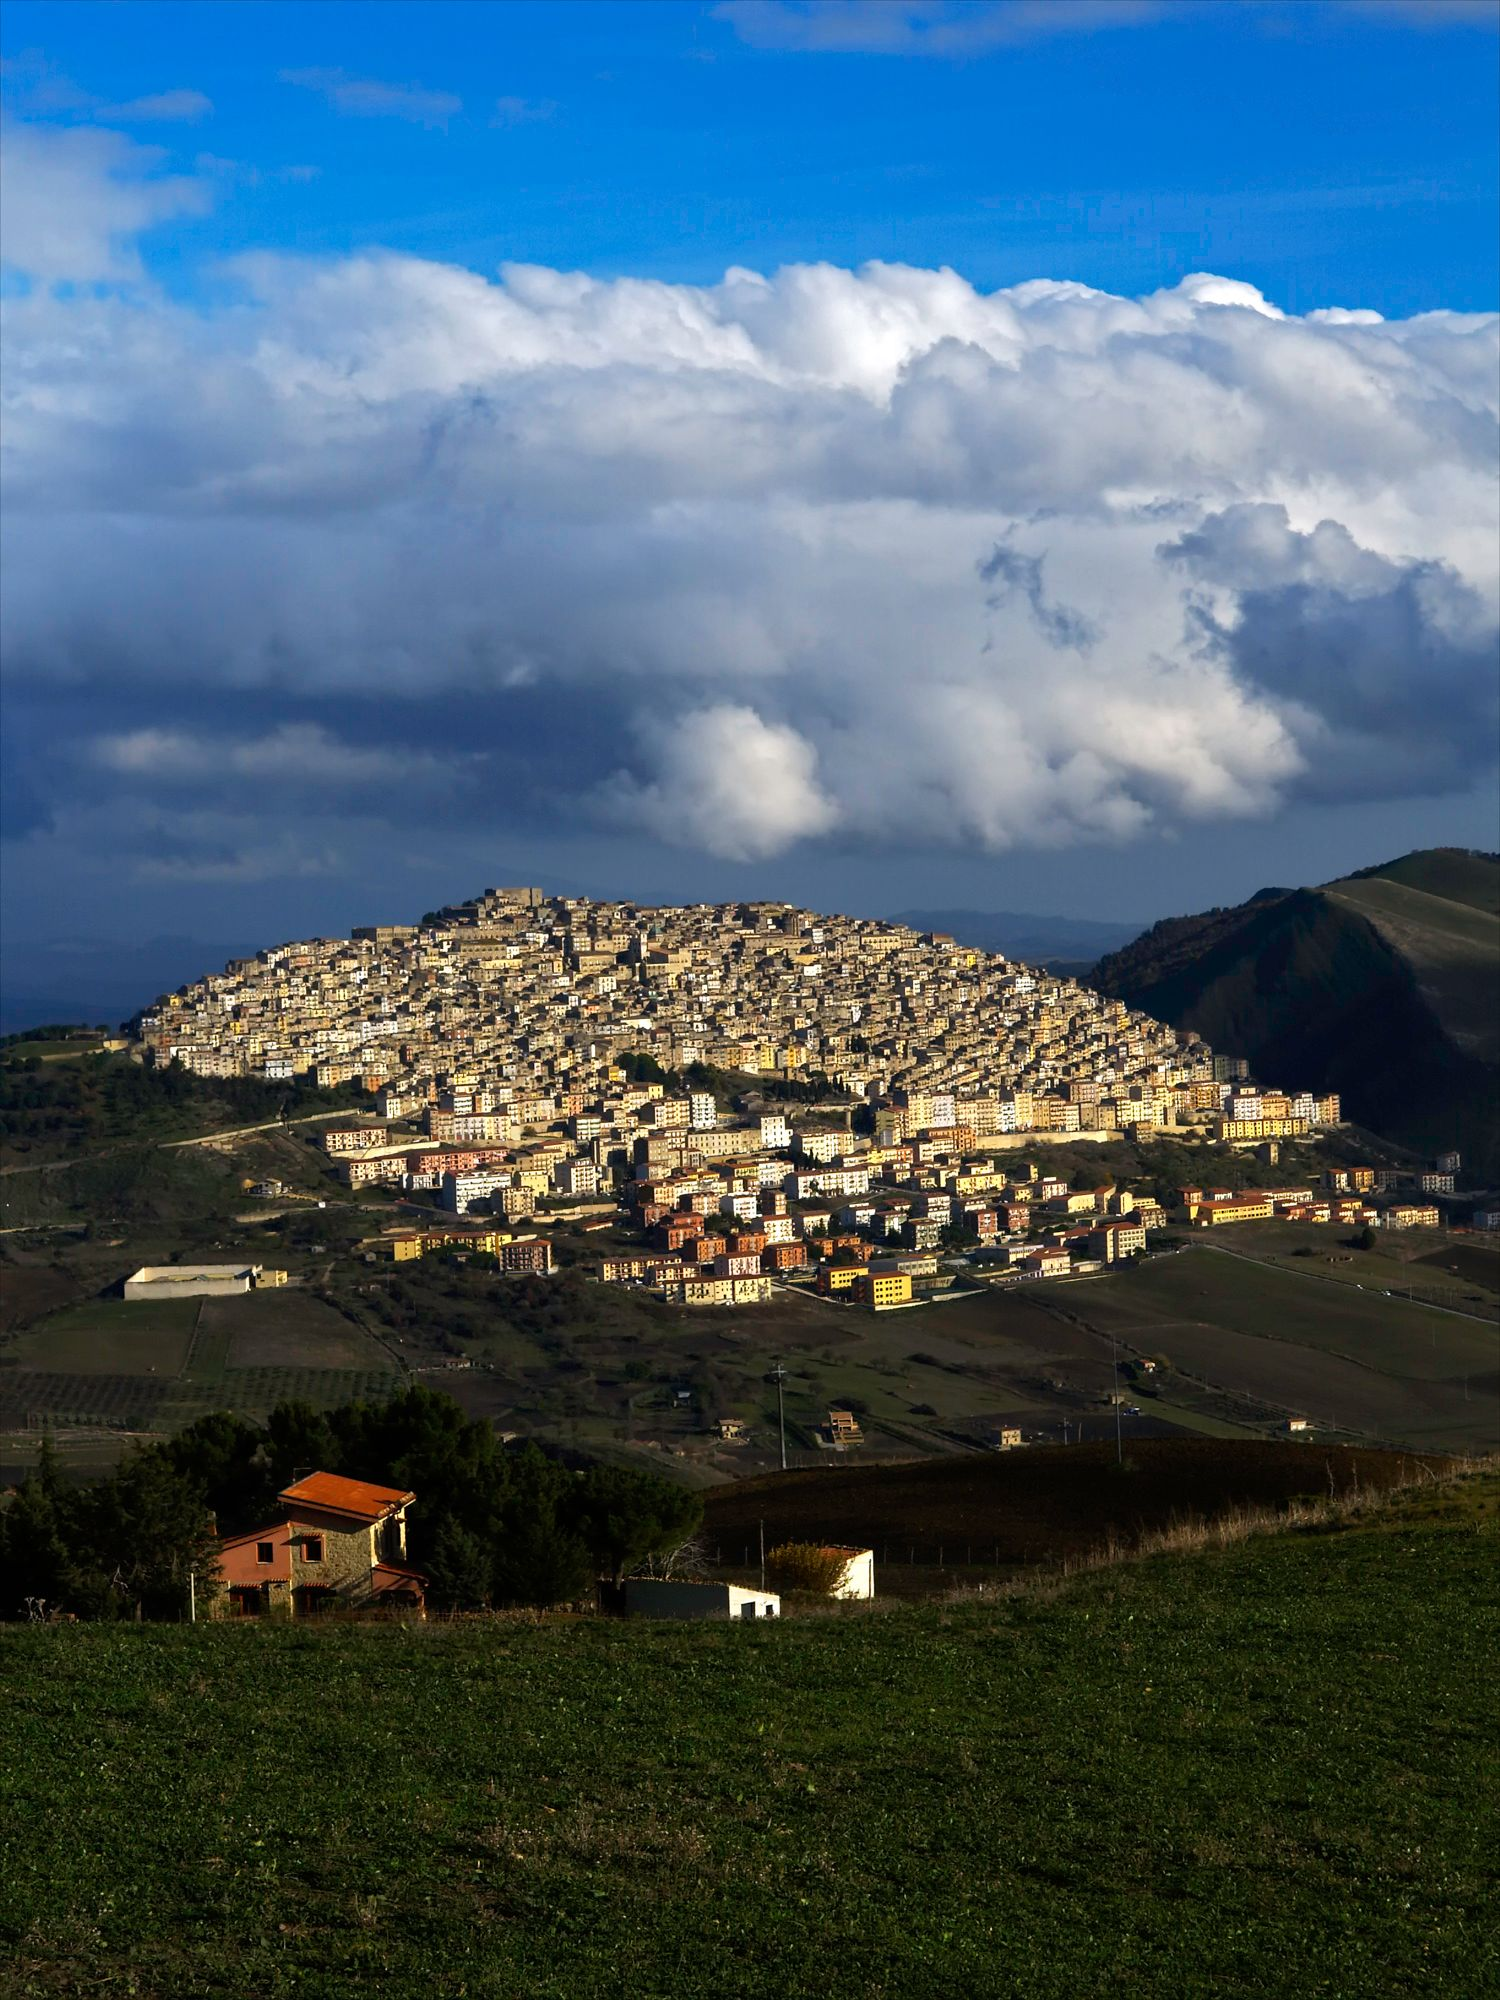 8-We Live Here-Gang, Italy.jpg